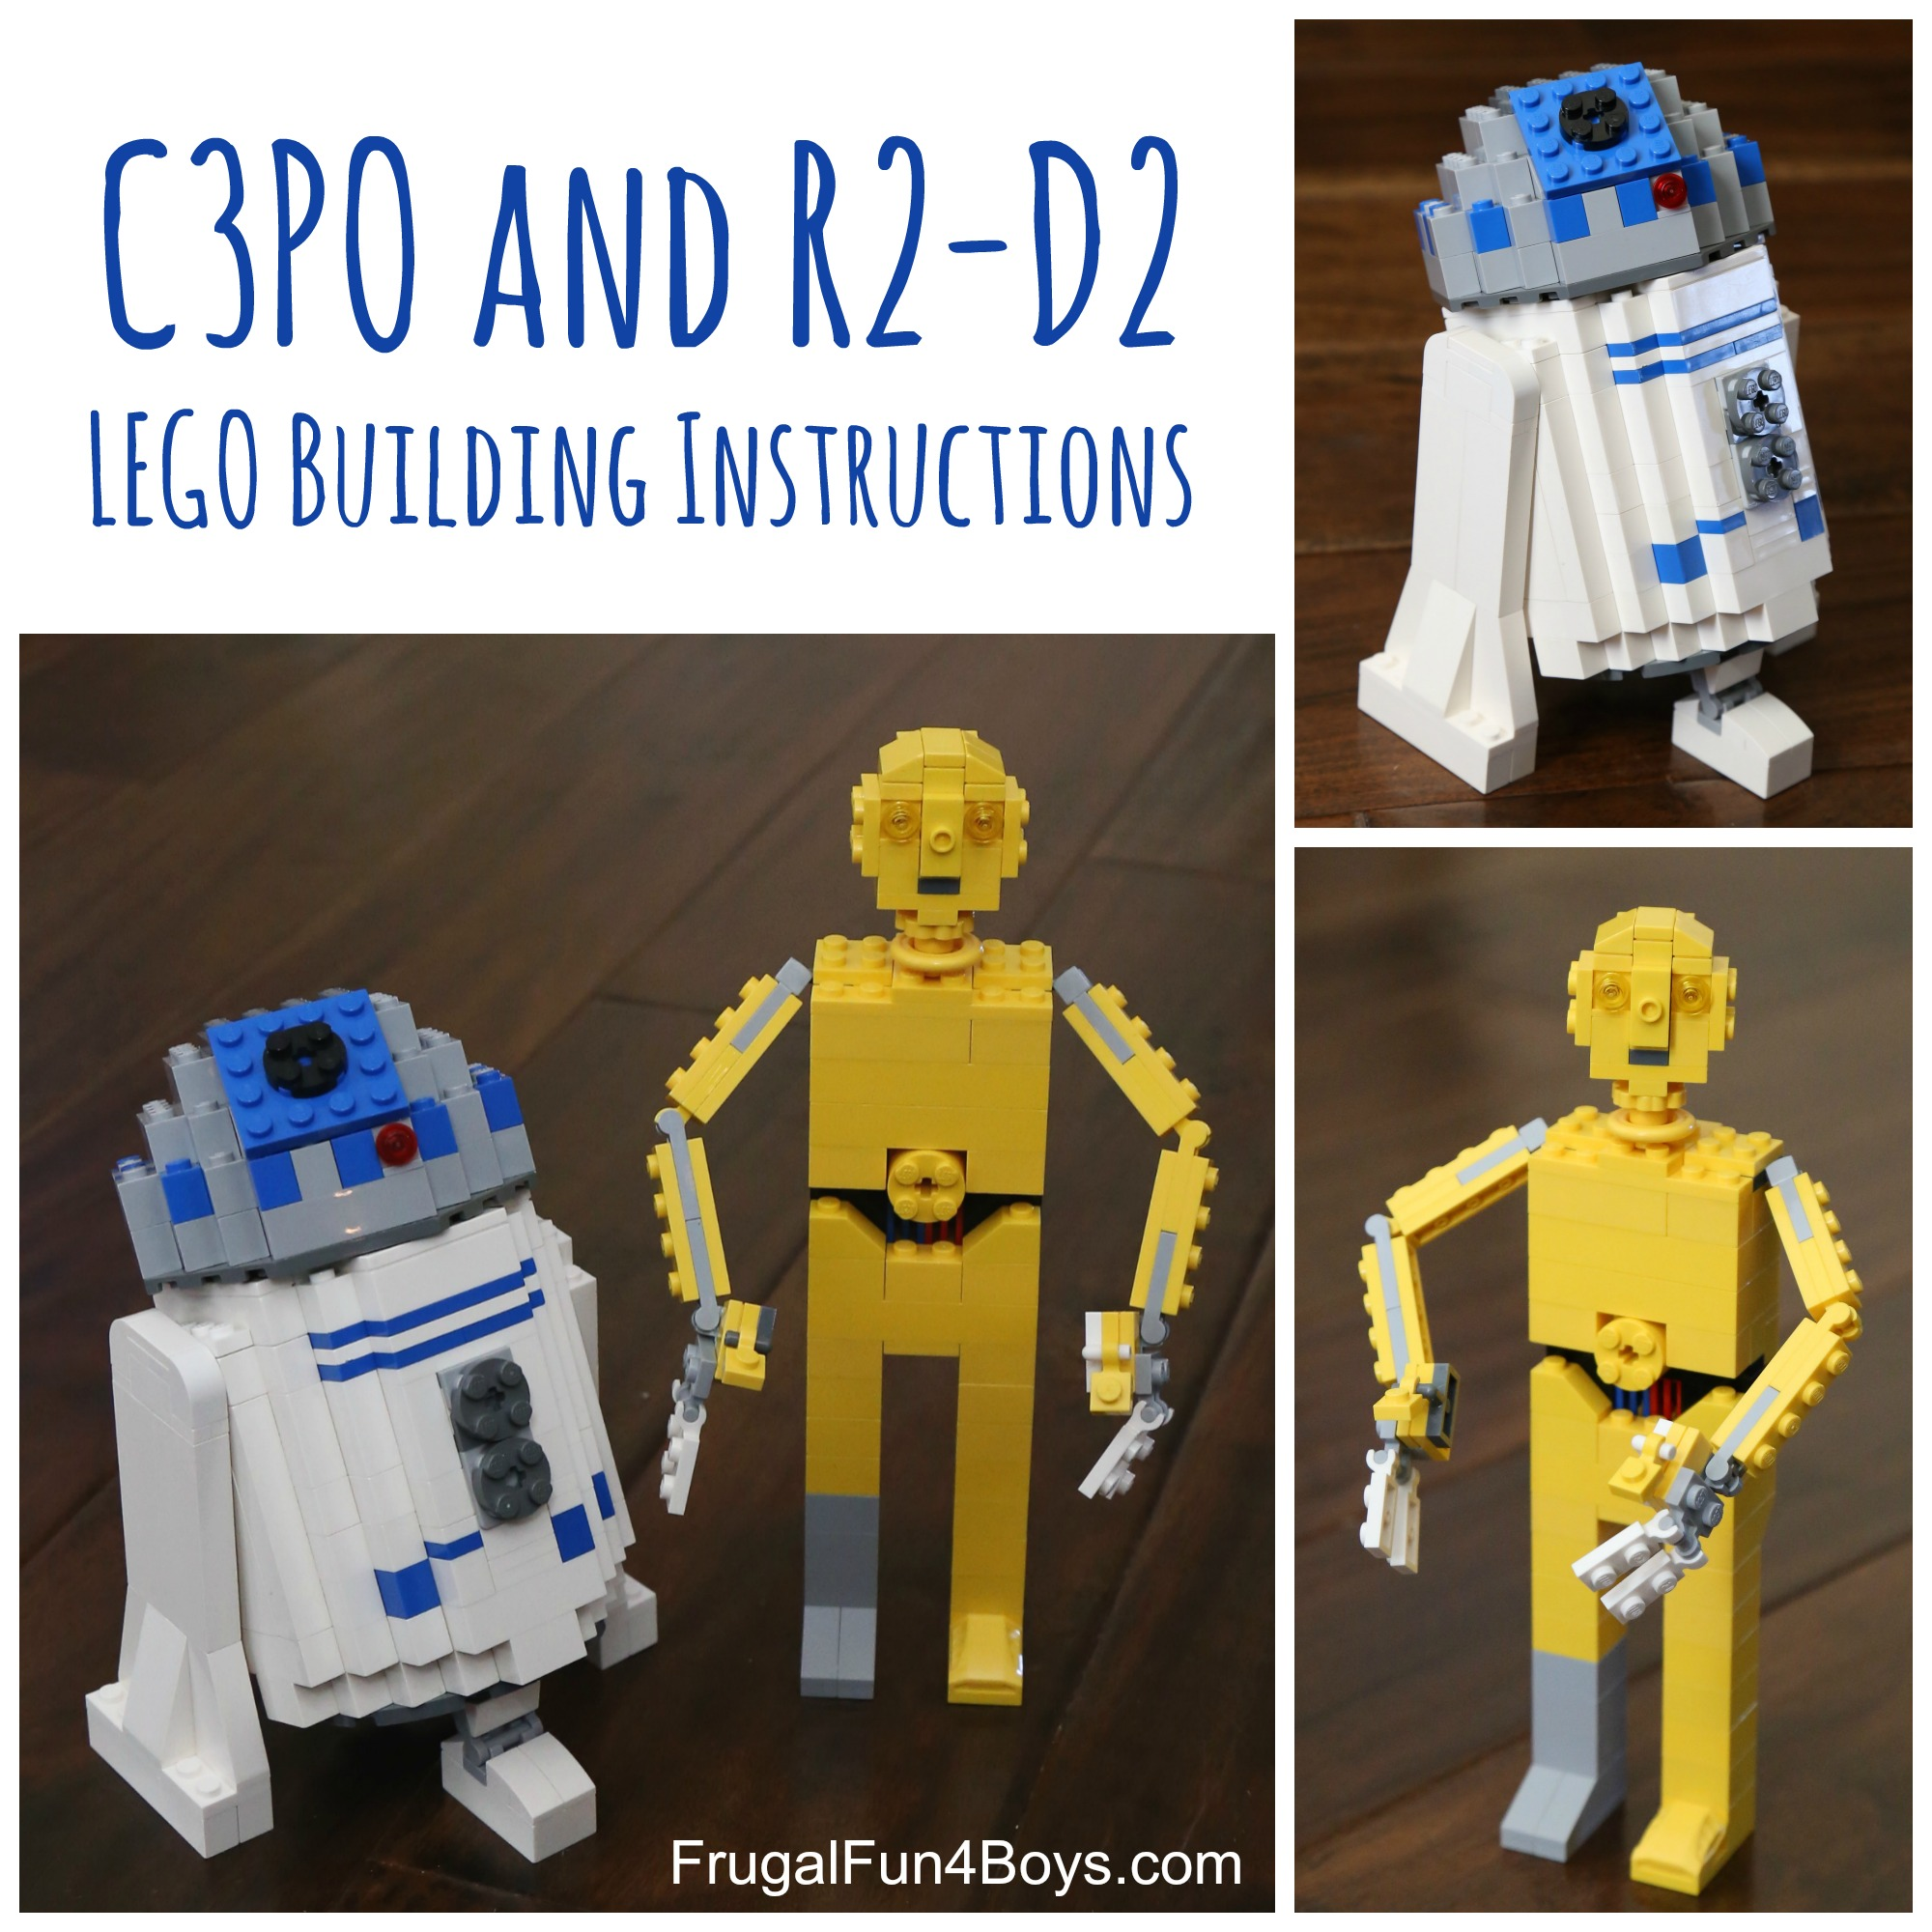 Lego Star Wars C3po Building Instructions Frugal Fun For Boys And